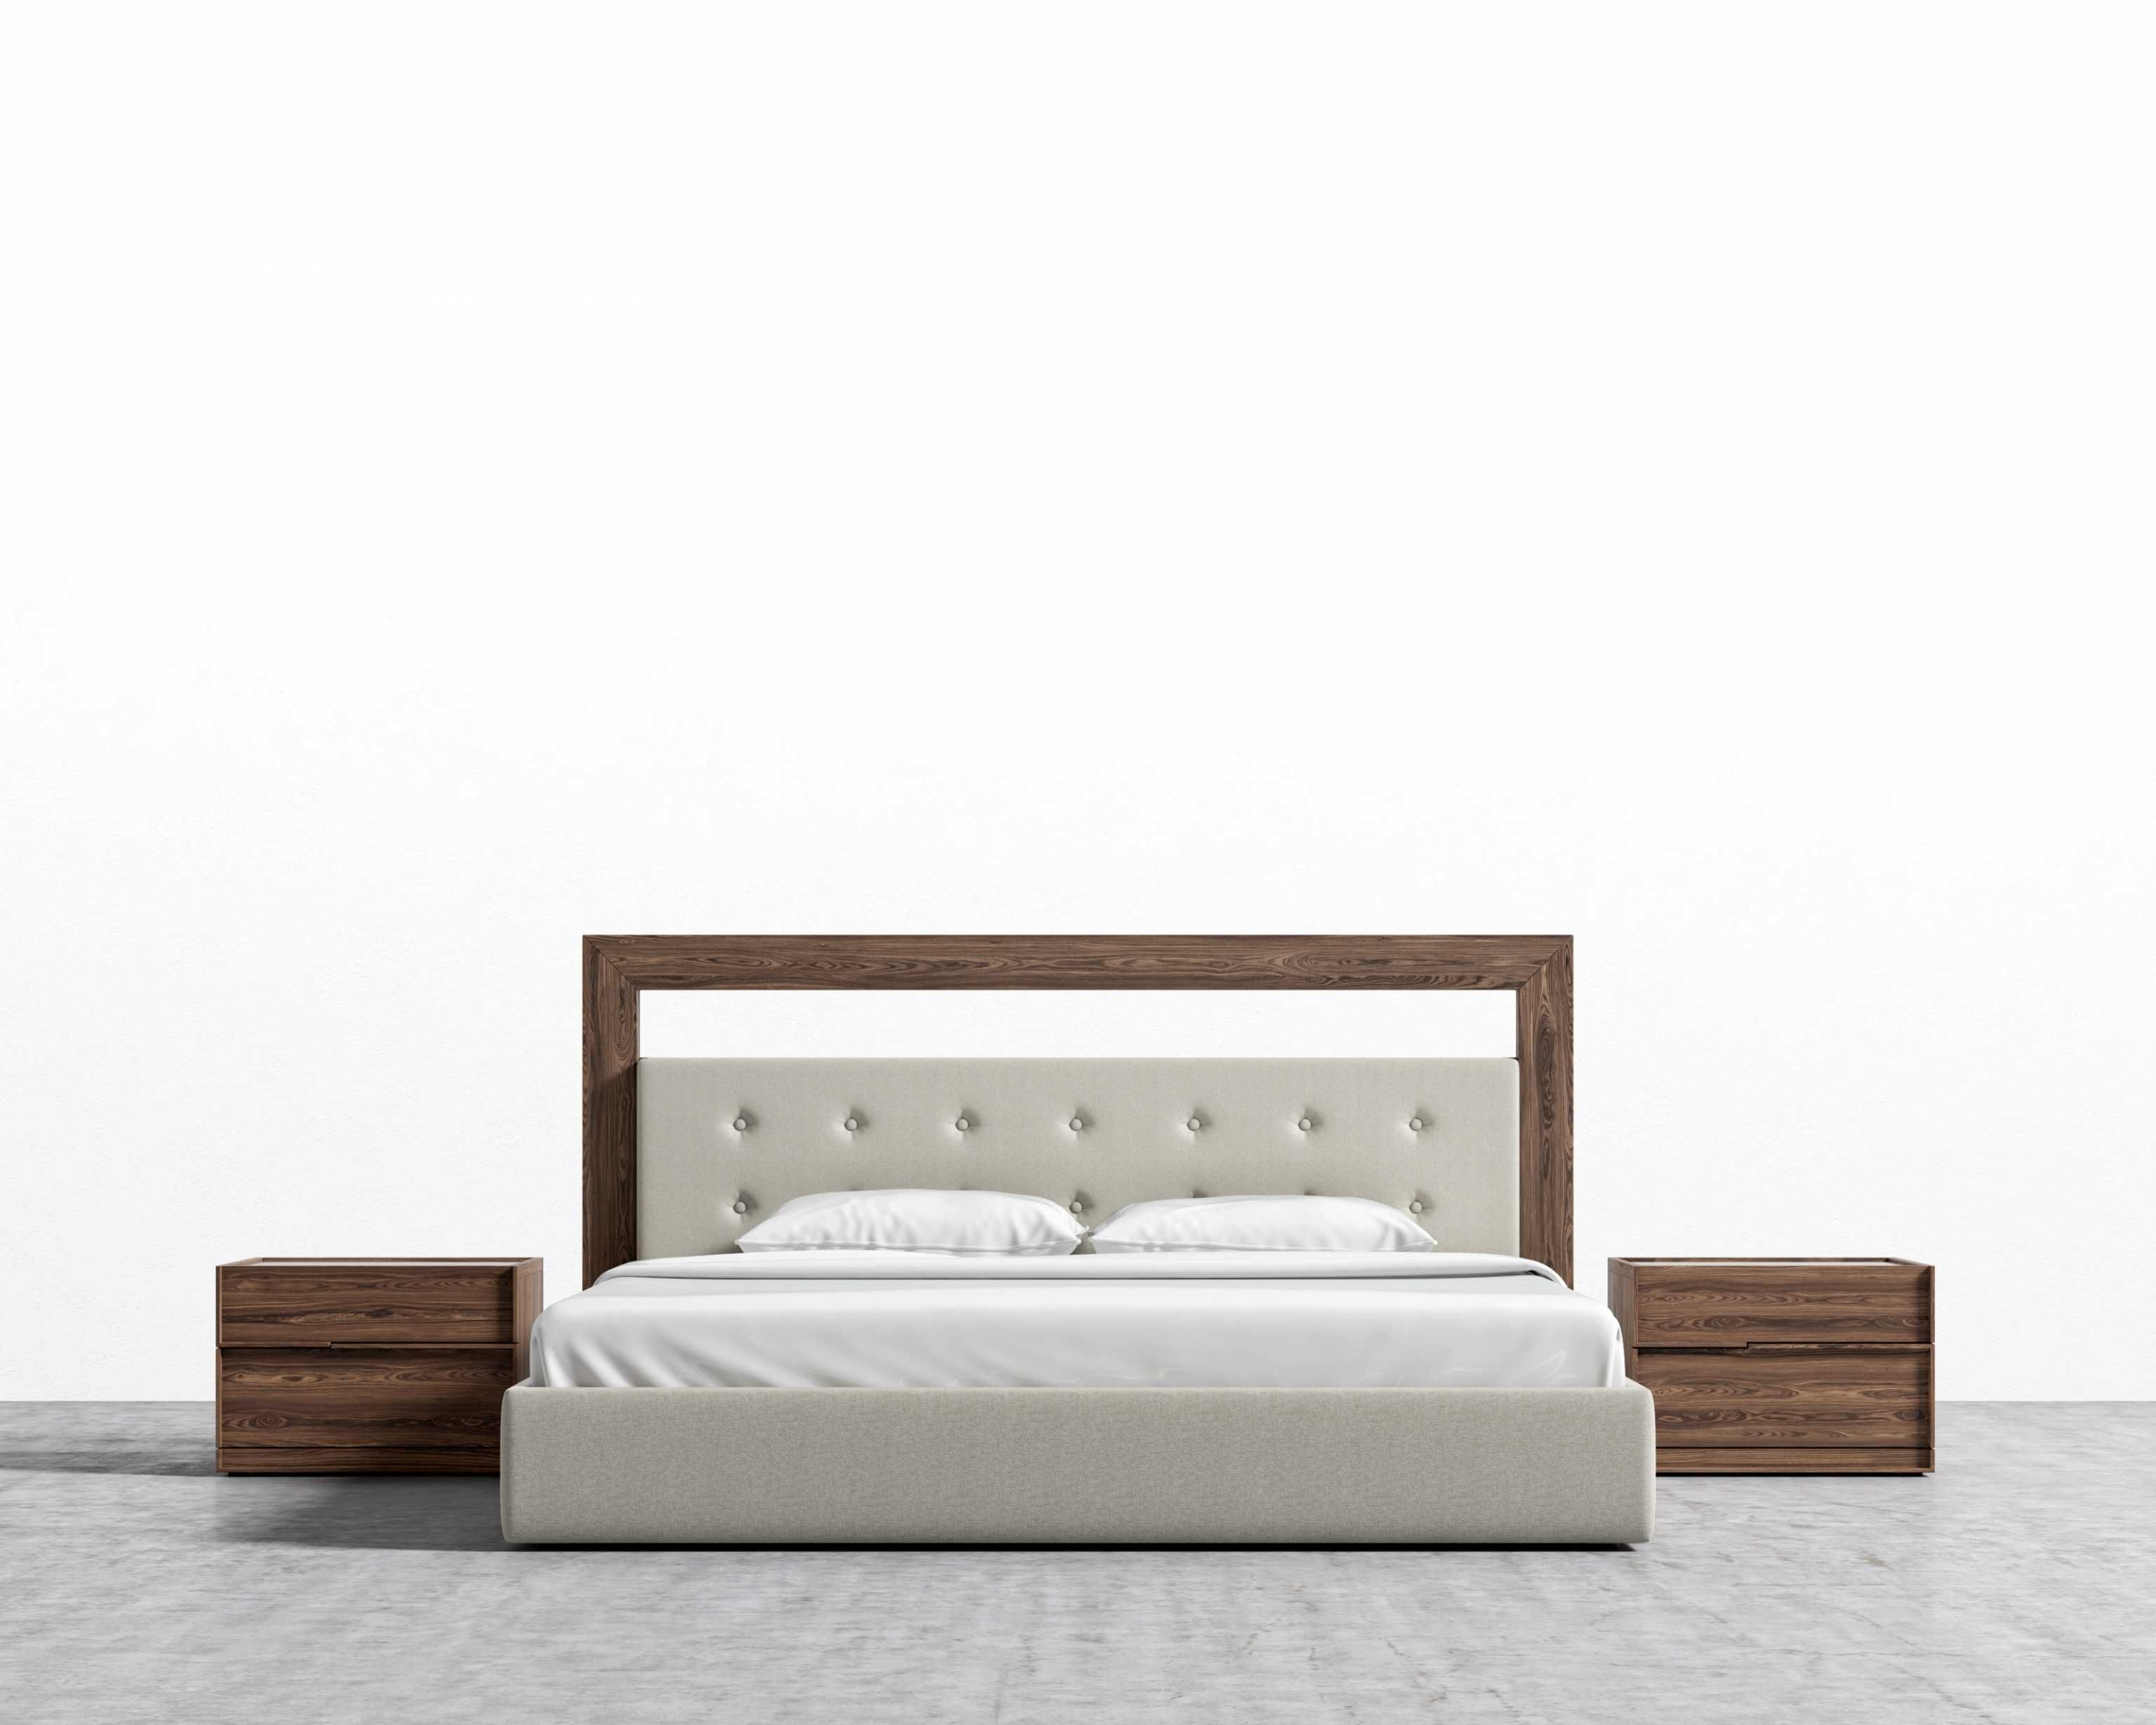 Chloe Bed Rove Concepts Rove Concepts Mid Century Furniture